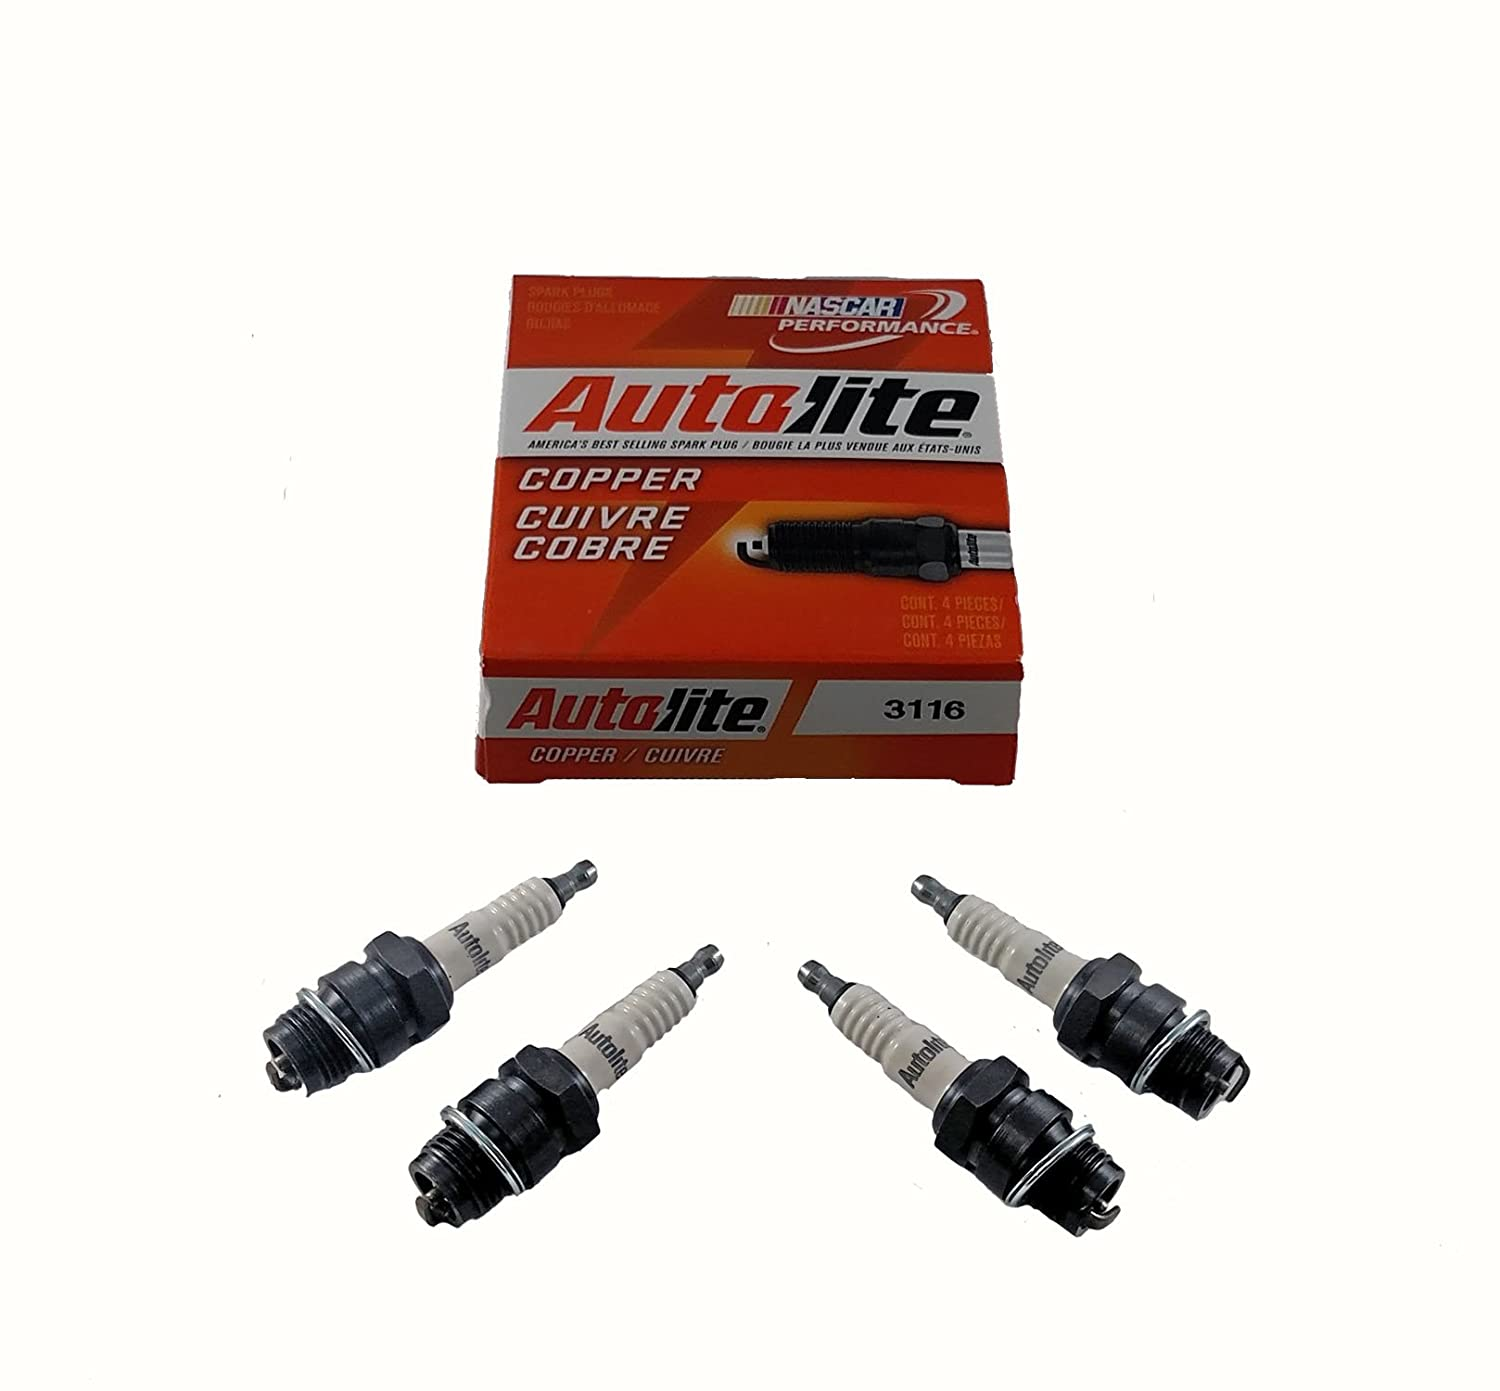 4 pack of Spark Plugs Autolite 386 for International Farmall IHC Tractors